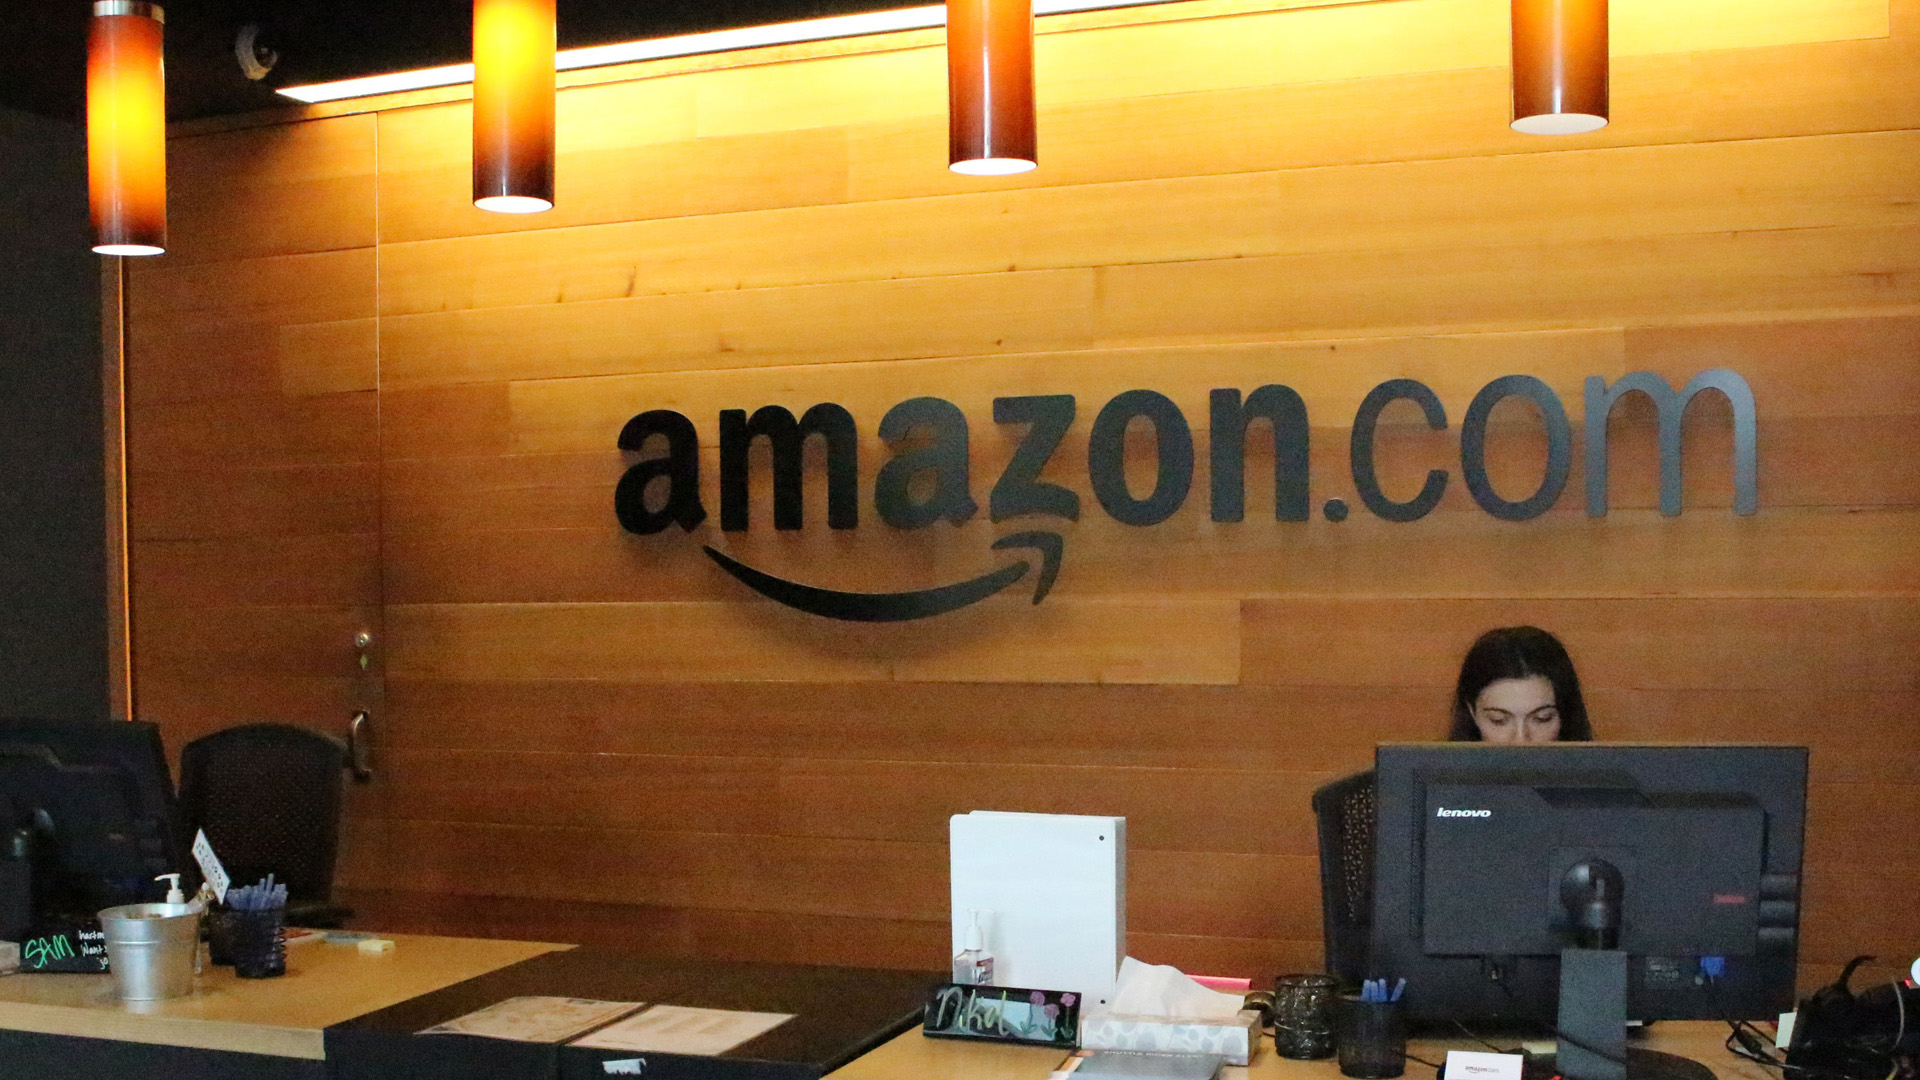 A reception desk at Amazon offices is seen in downtown Seattle, Washington on May 11, 2017. (Credit: GLENN CHAPMAN/AFP/Getty Images)